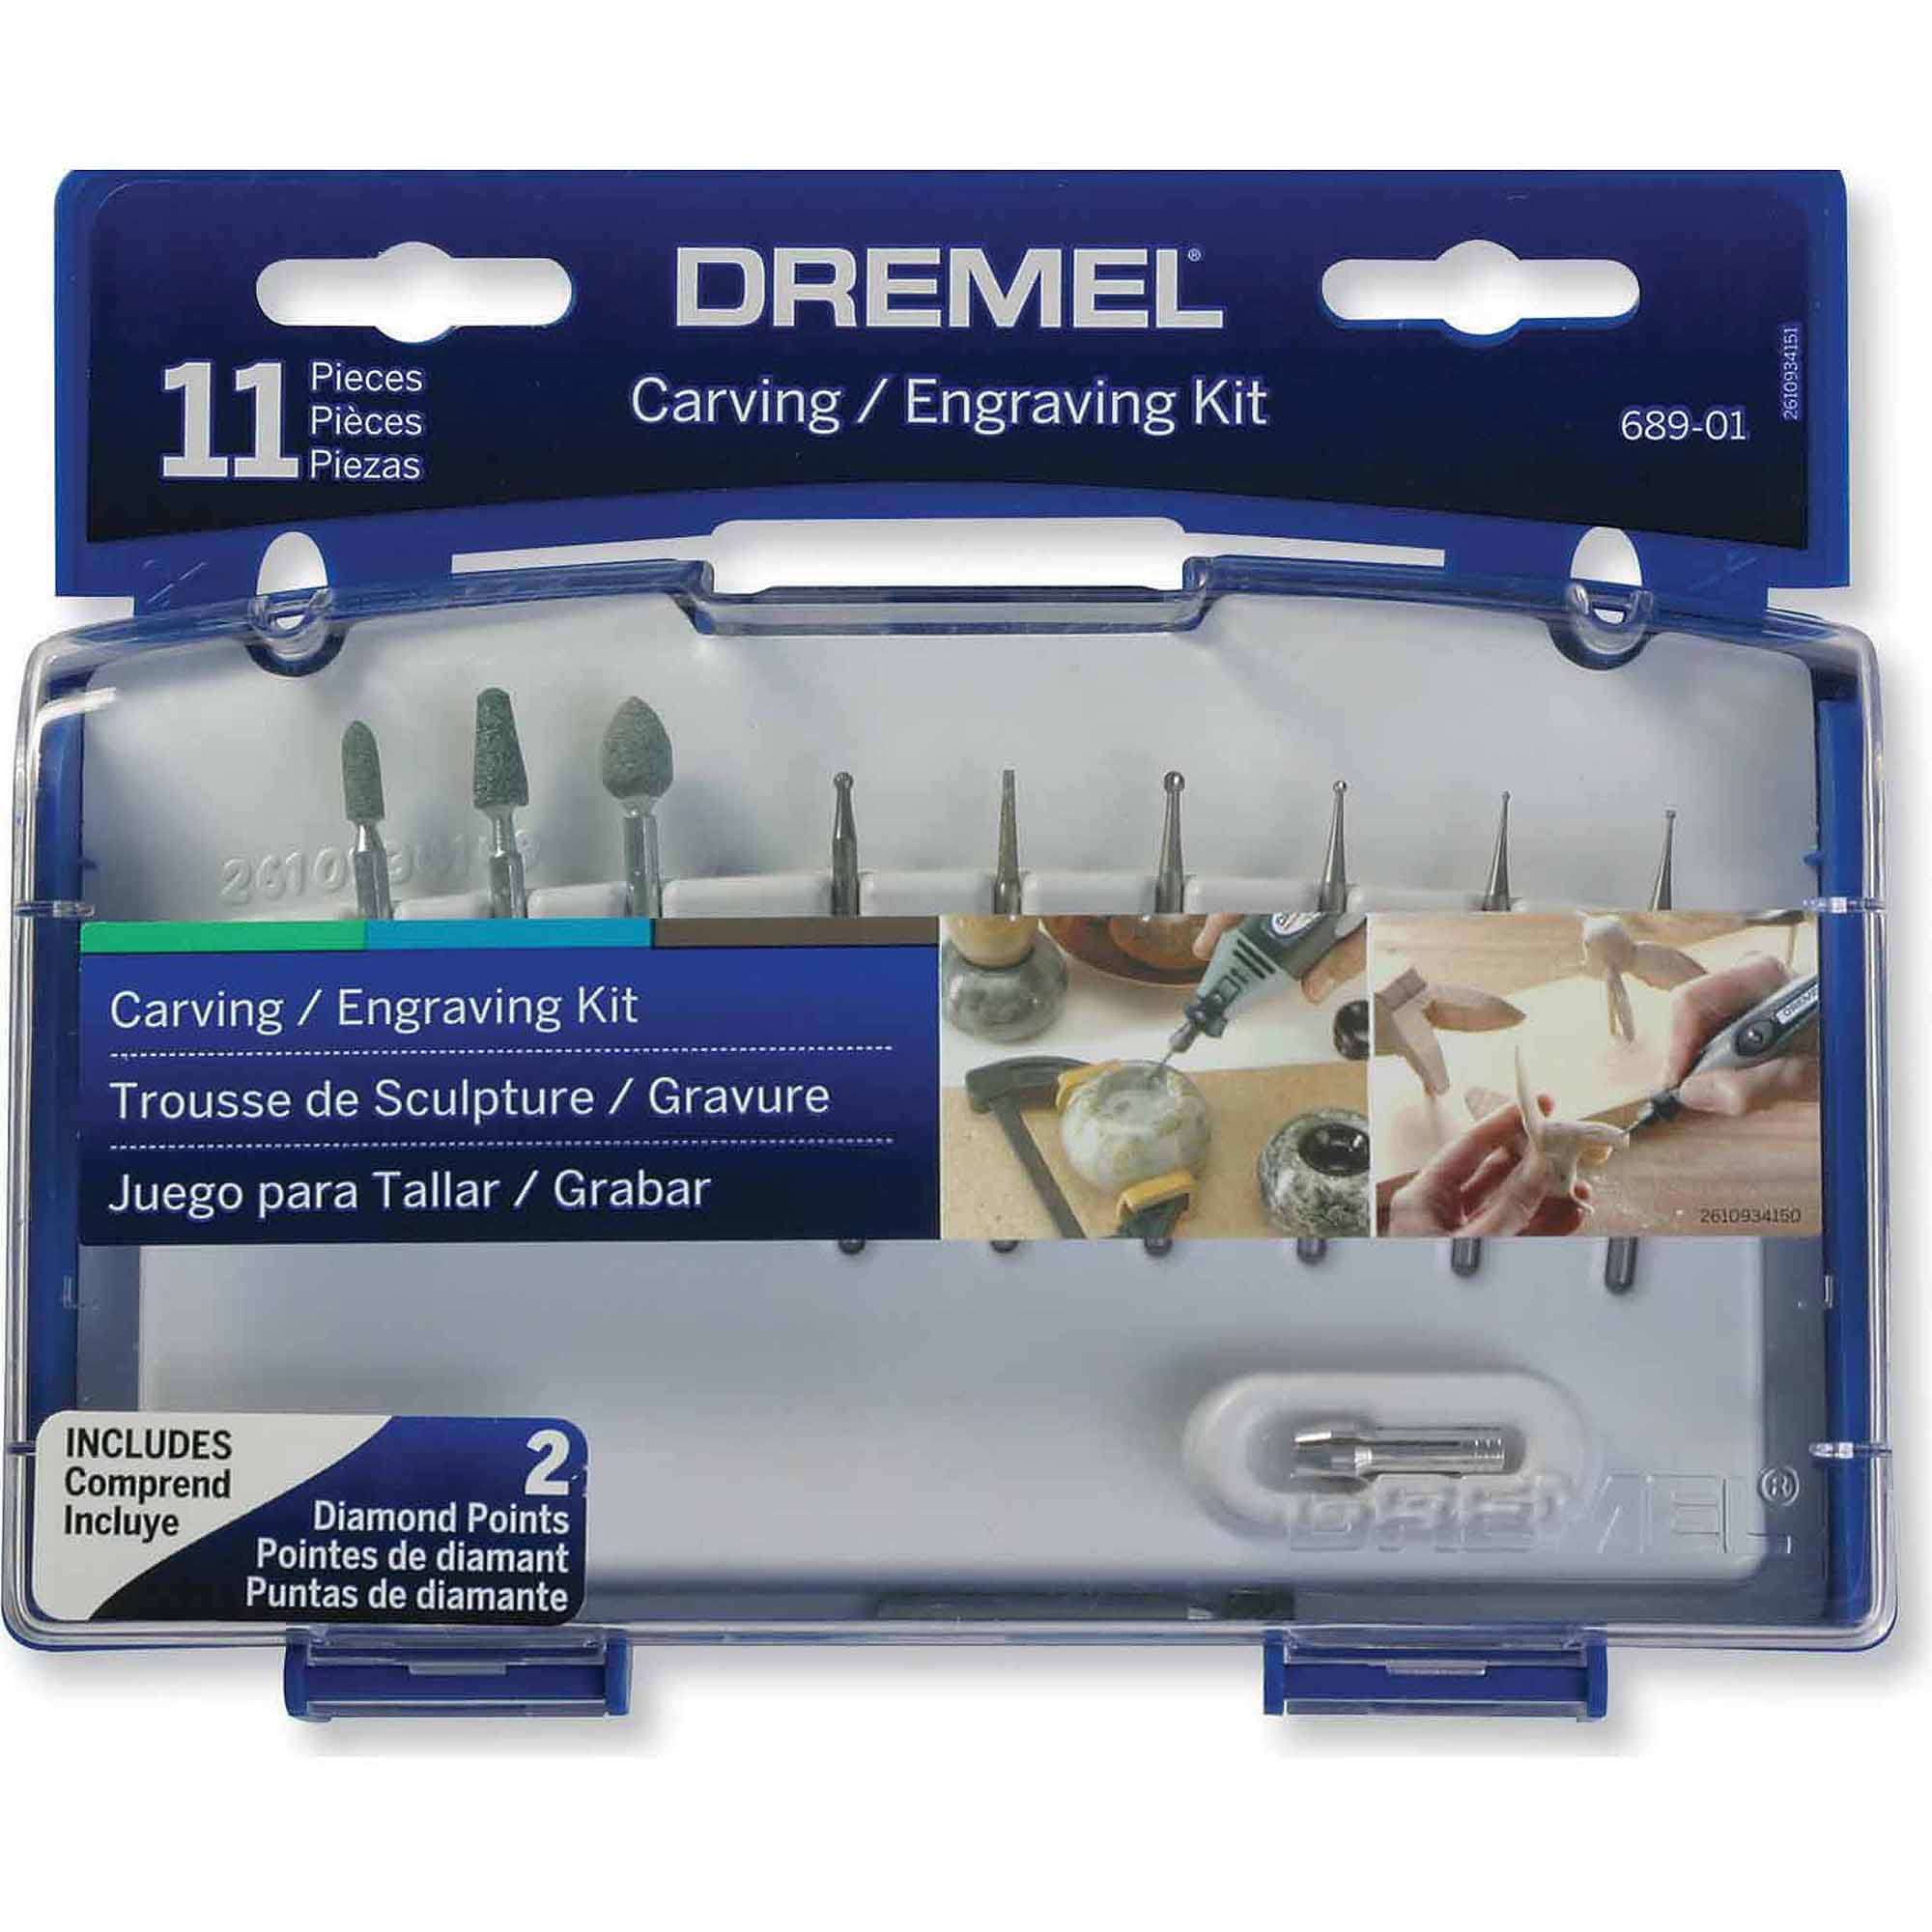 Dremel 689-01 11-Piece Carving/Engraving Kit